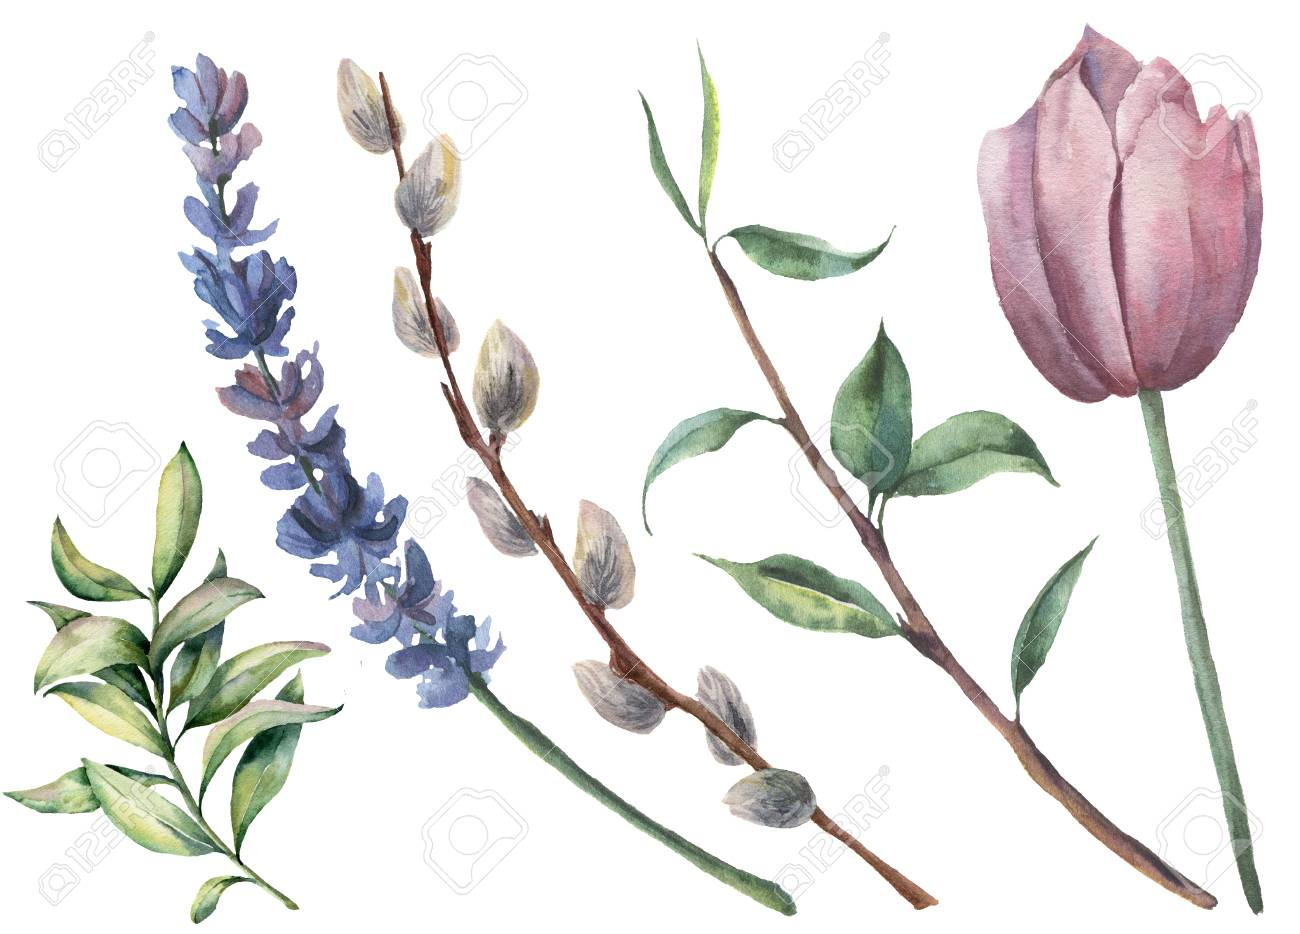 Watercolor spring floral set. Hand painted tulip, tree branch with leaves, lavender flower, willow and greenery isolated on white background. Botanical illustration for design or background. - 96524549